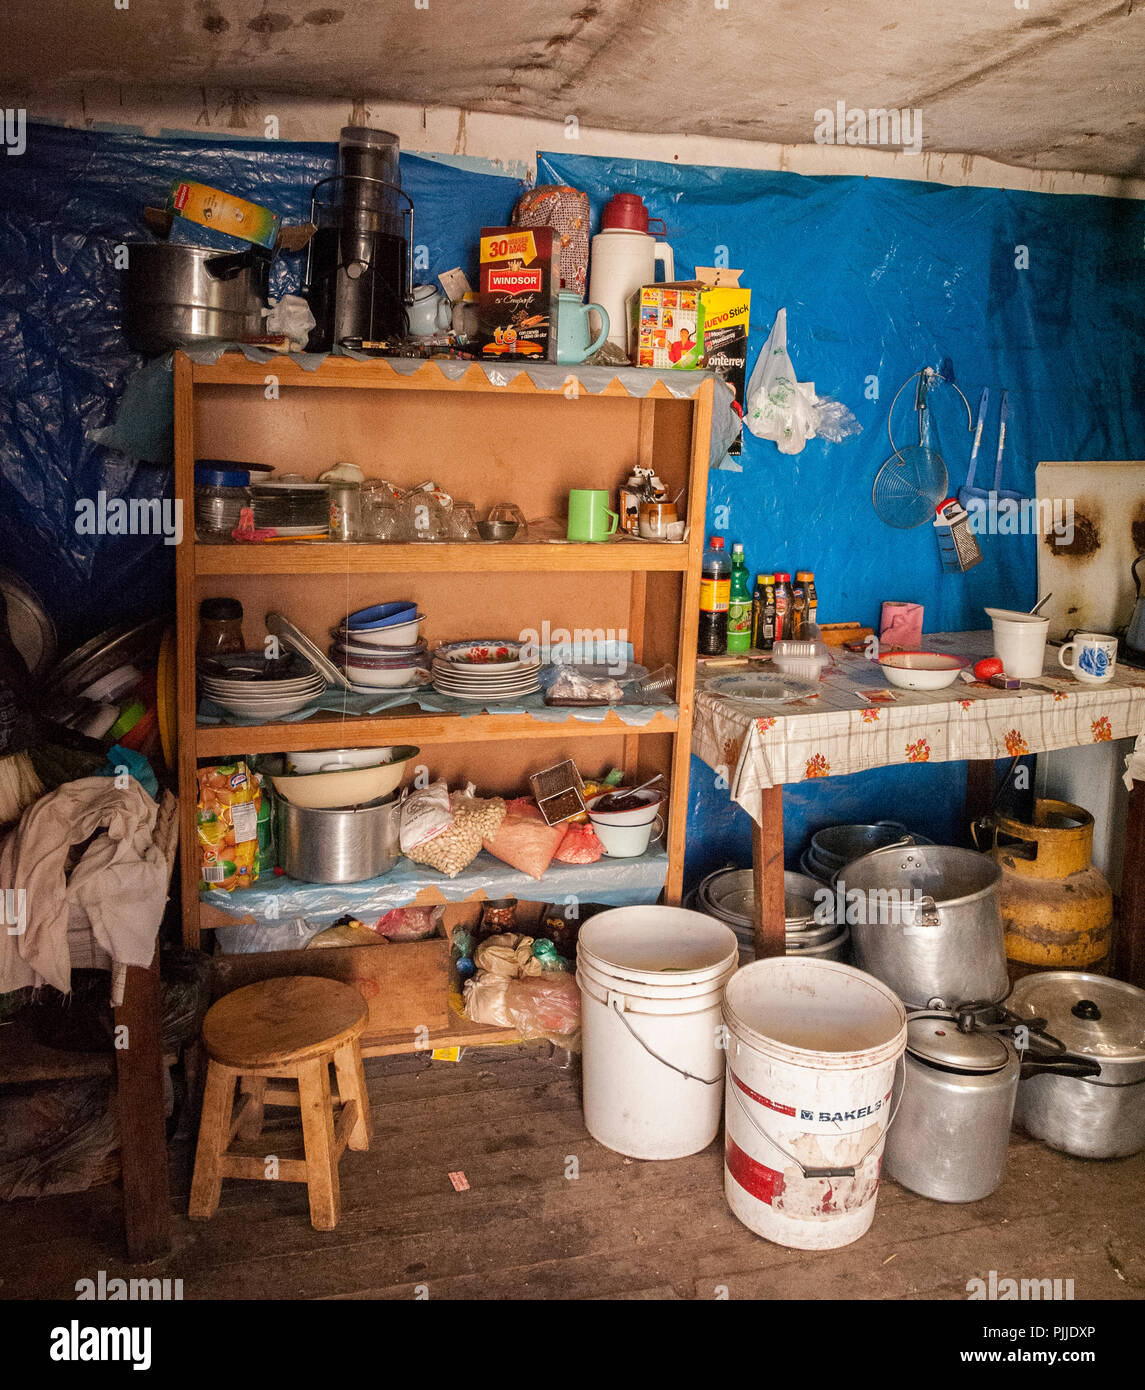 Interior of a bolivian house along the road to Oruro - Bolivia - Stock Image